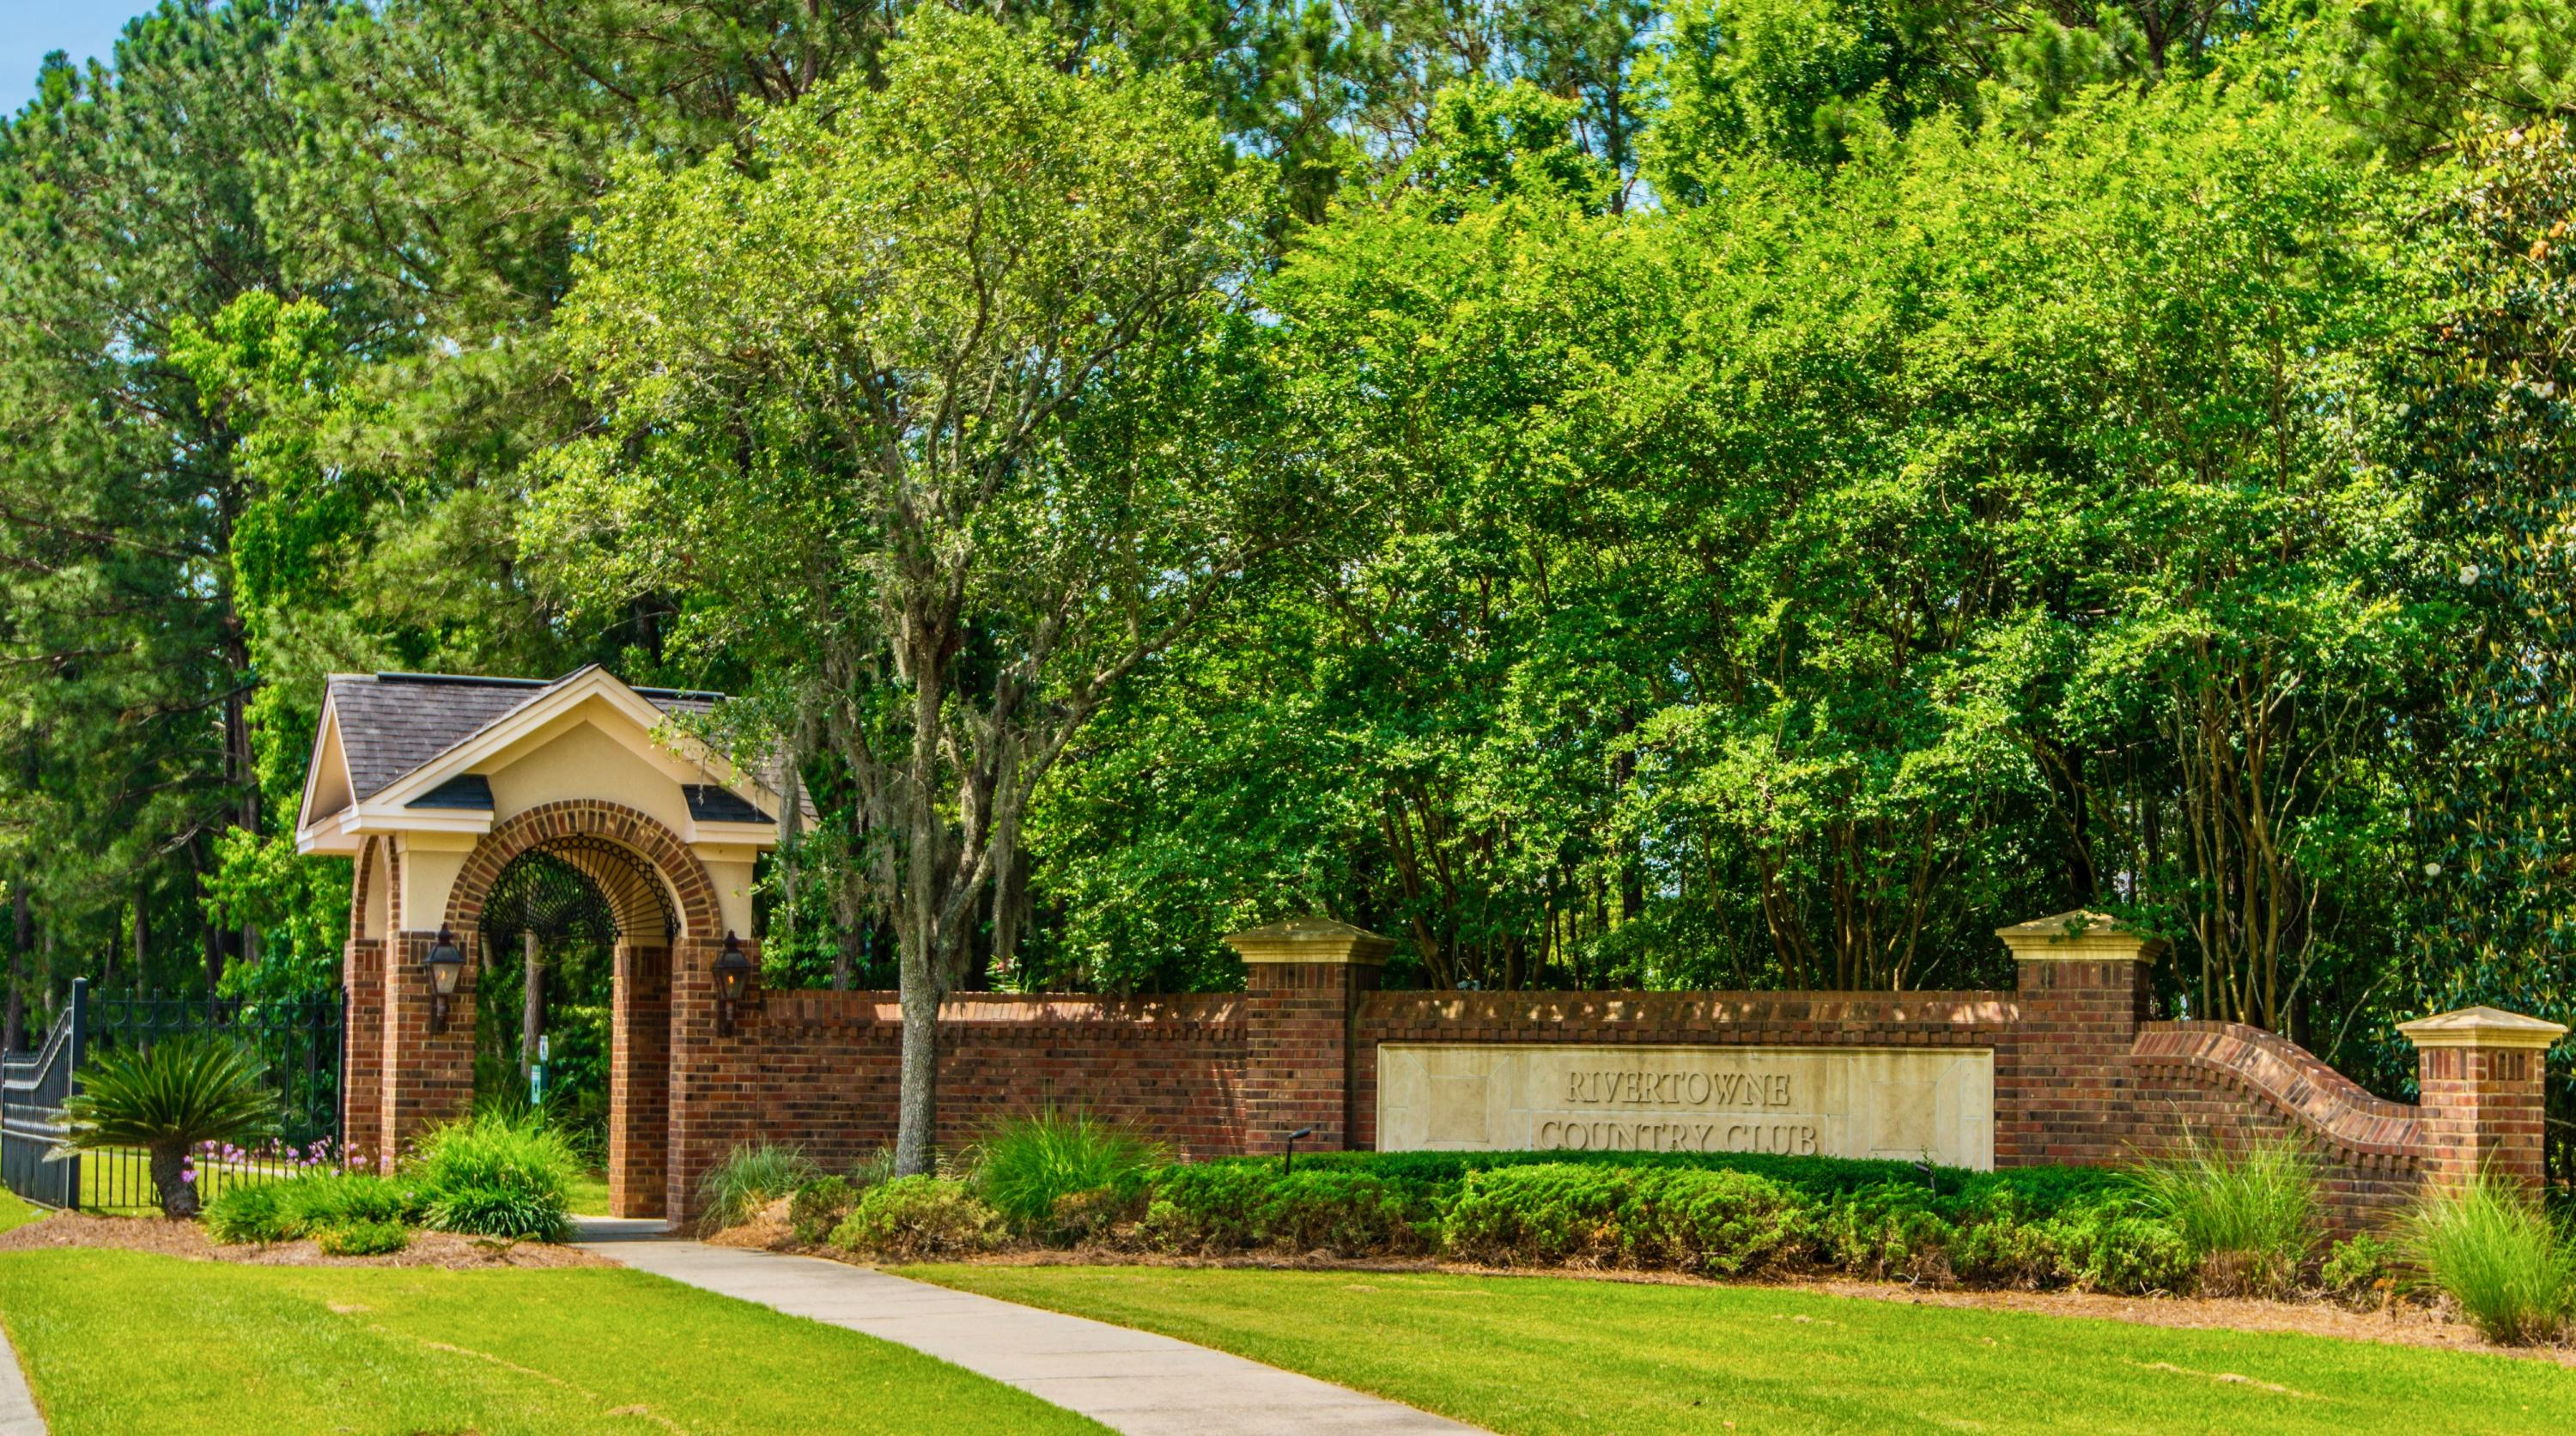 Rivertowne Country Club Homes For Sale - 1548 Rivertowne Country Club, Mount Pleasant, SC - 21